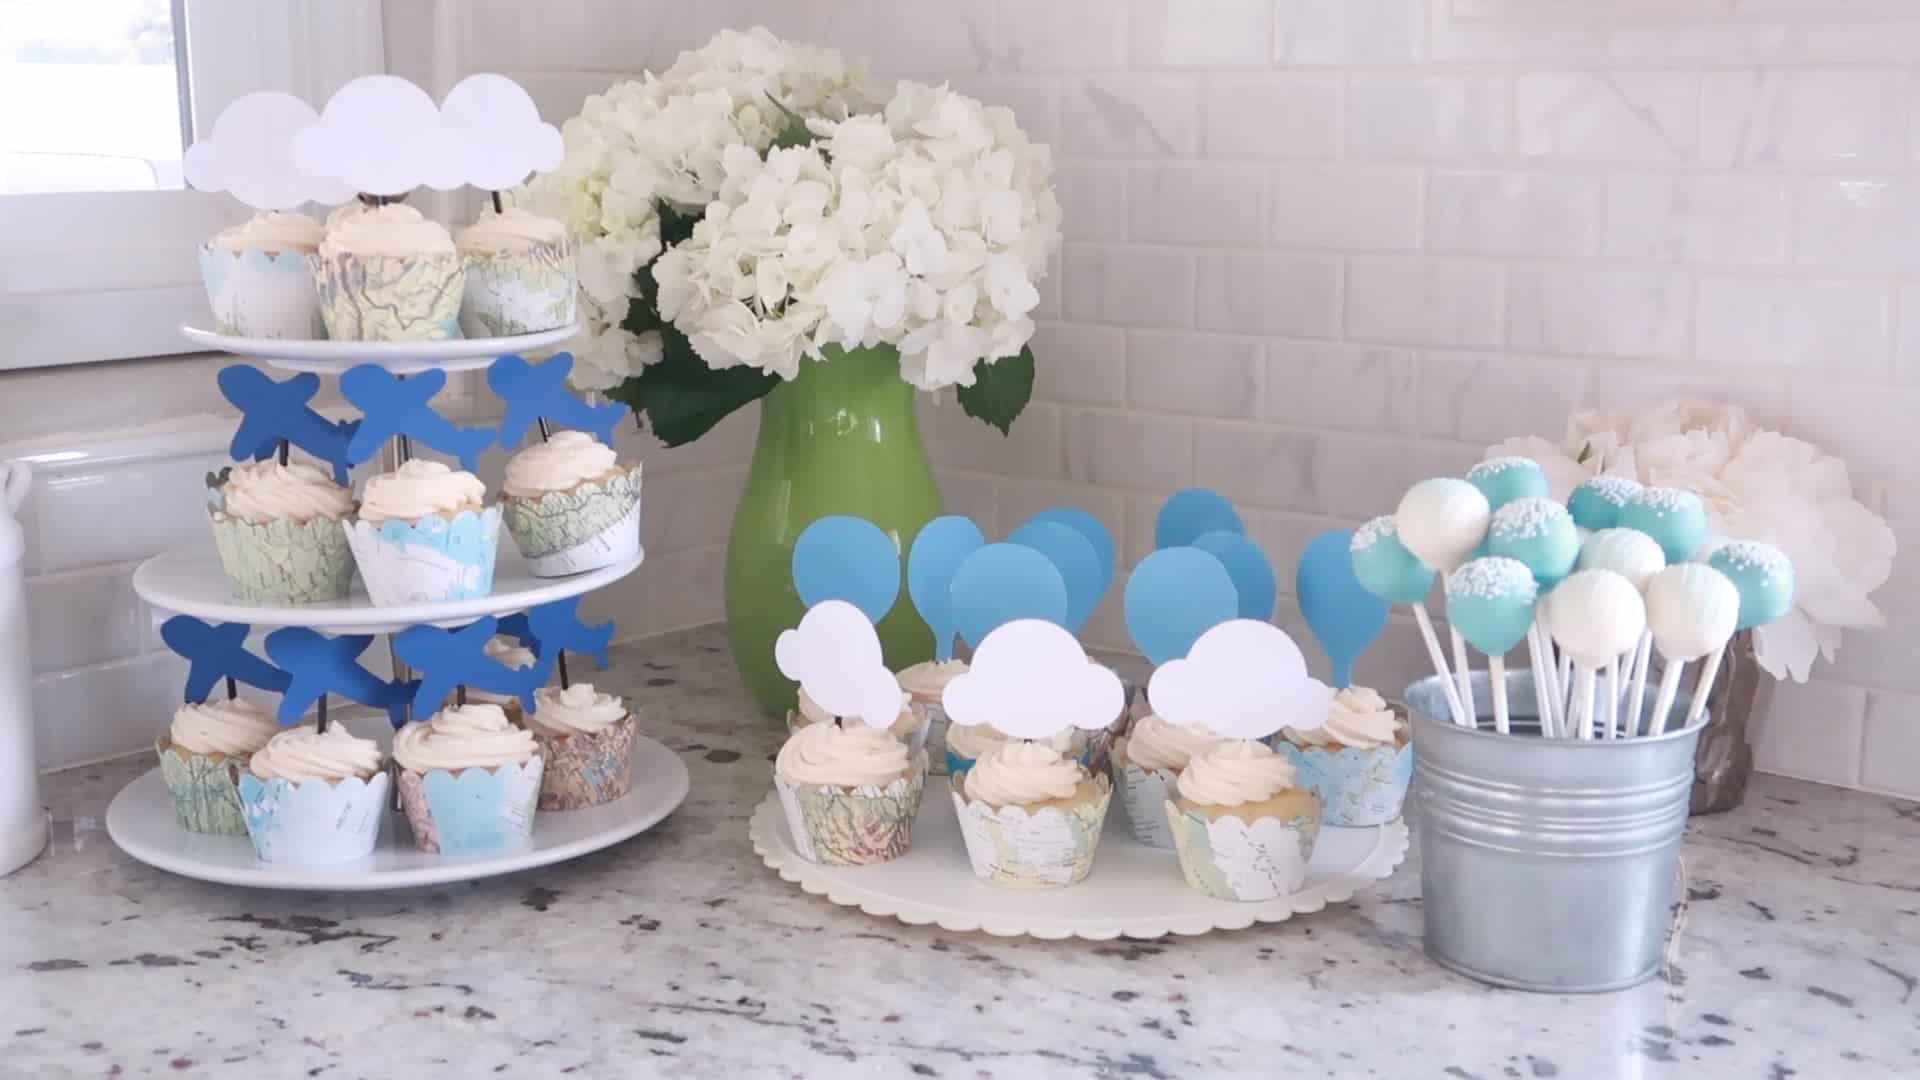 Baby Shower Cupcakes on platters with white hydrangeas and a can of cake pops